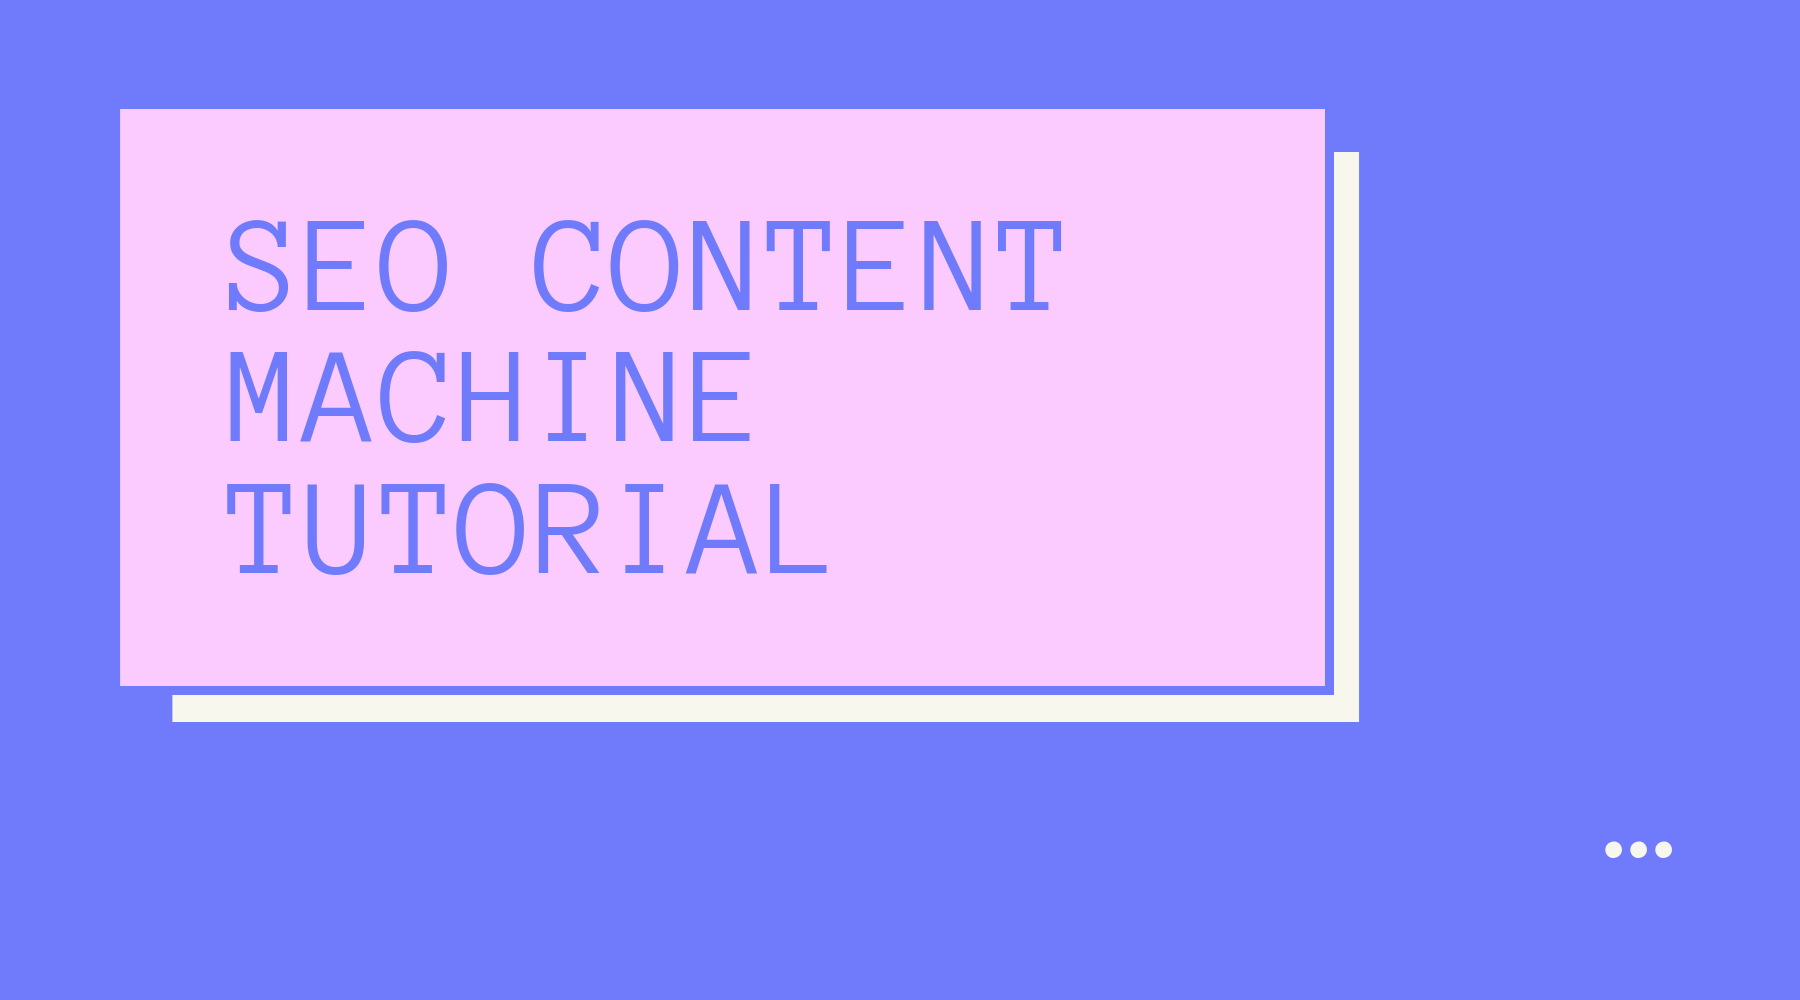 SEO Content Machine Tutorial - Unique Content Generator and Auto Content Creation Tool